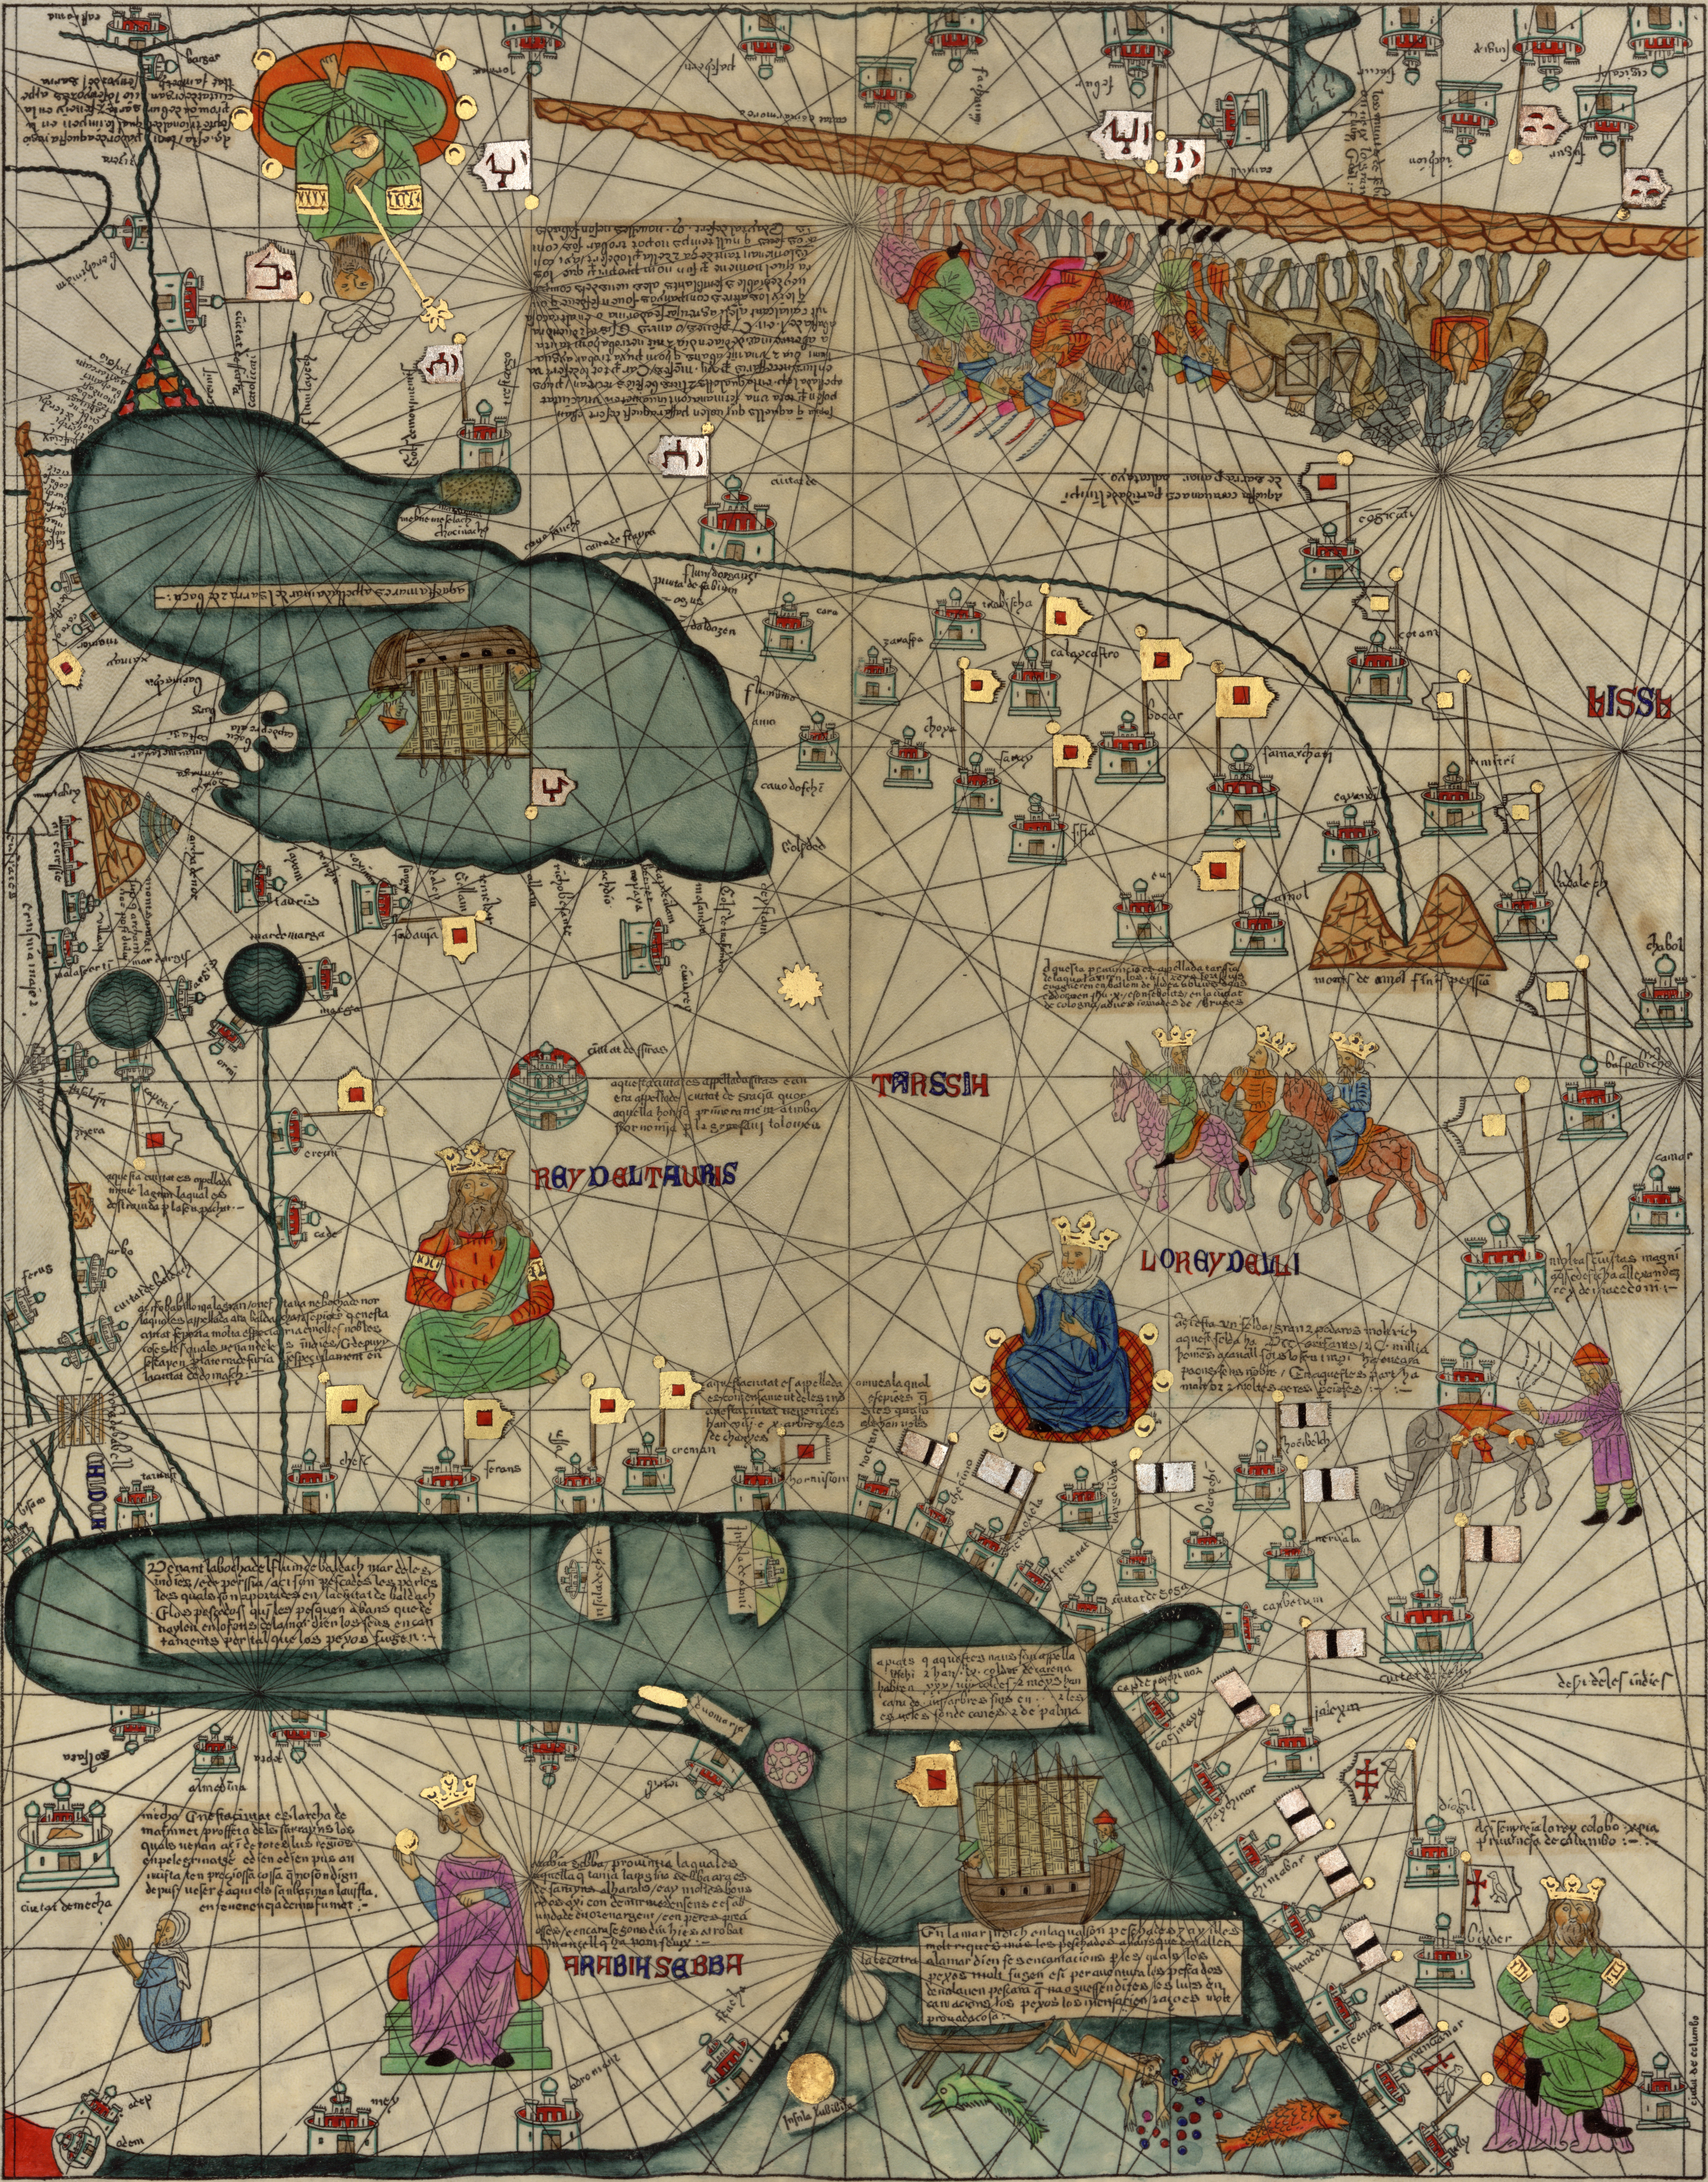 Cresques catalan atlas world maps 1387 dwnld full size gumiabroncs Image collections